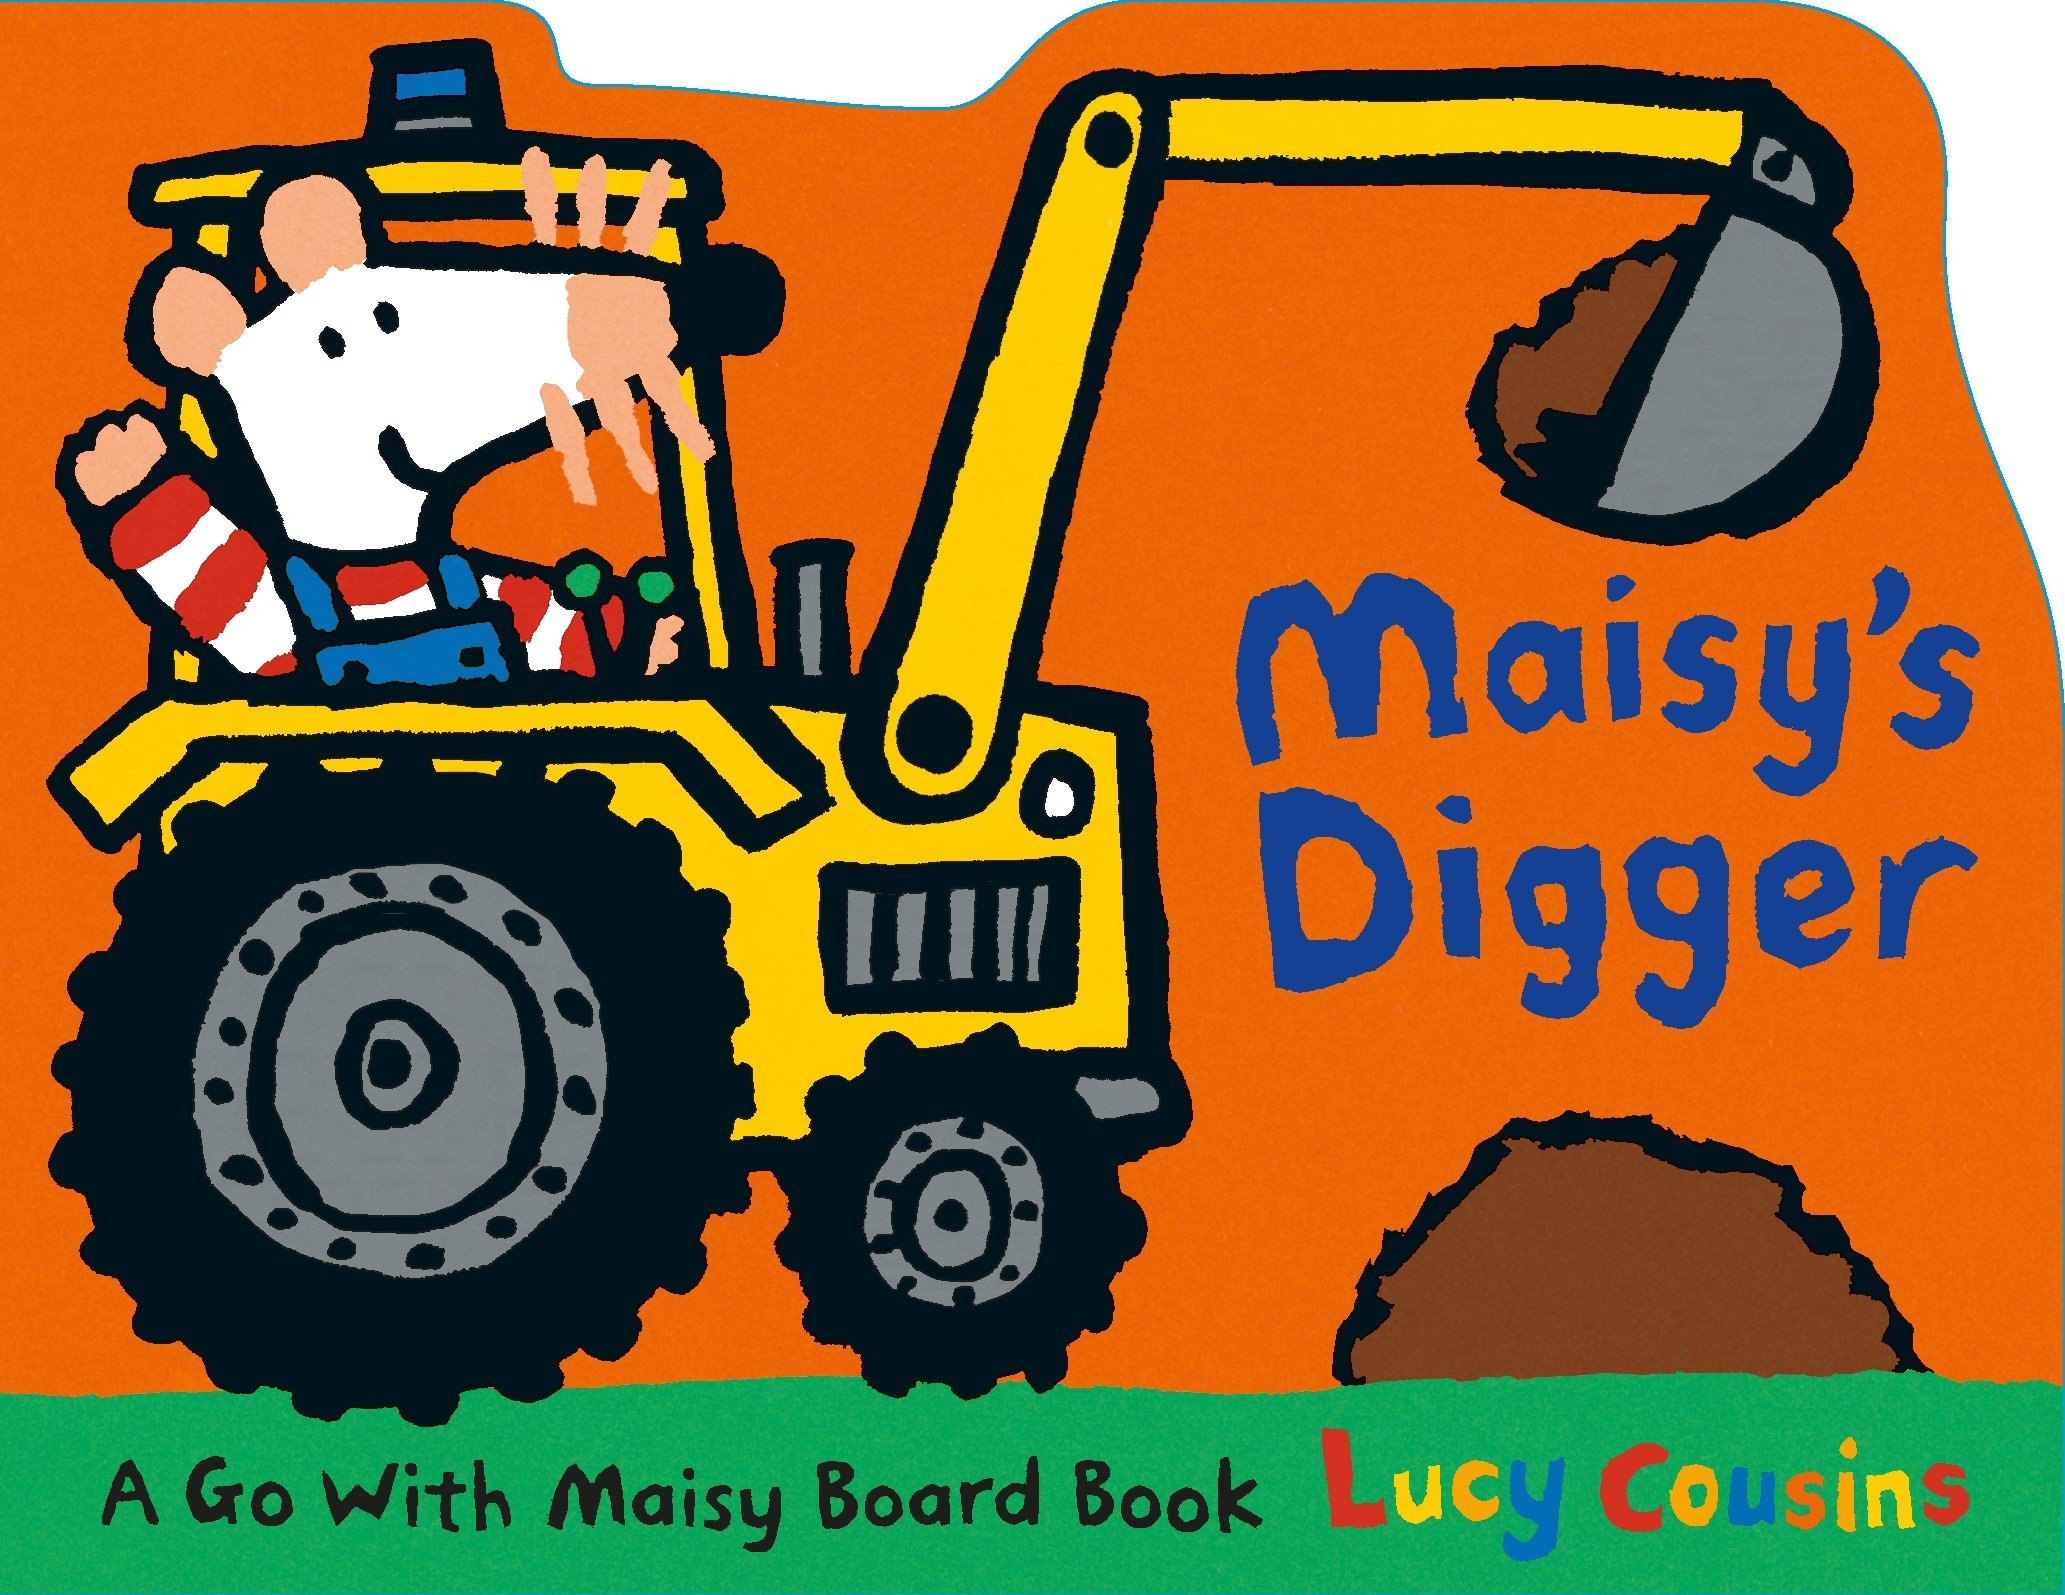 Download Maisy's Digger: A Go with Maisy Board Book PDF